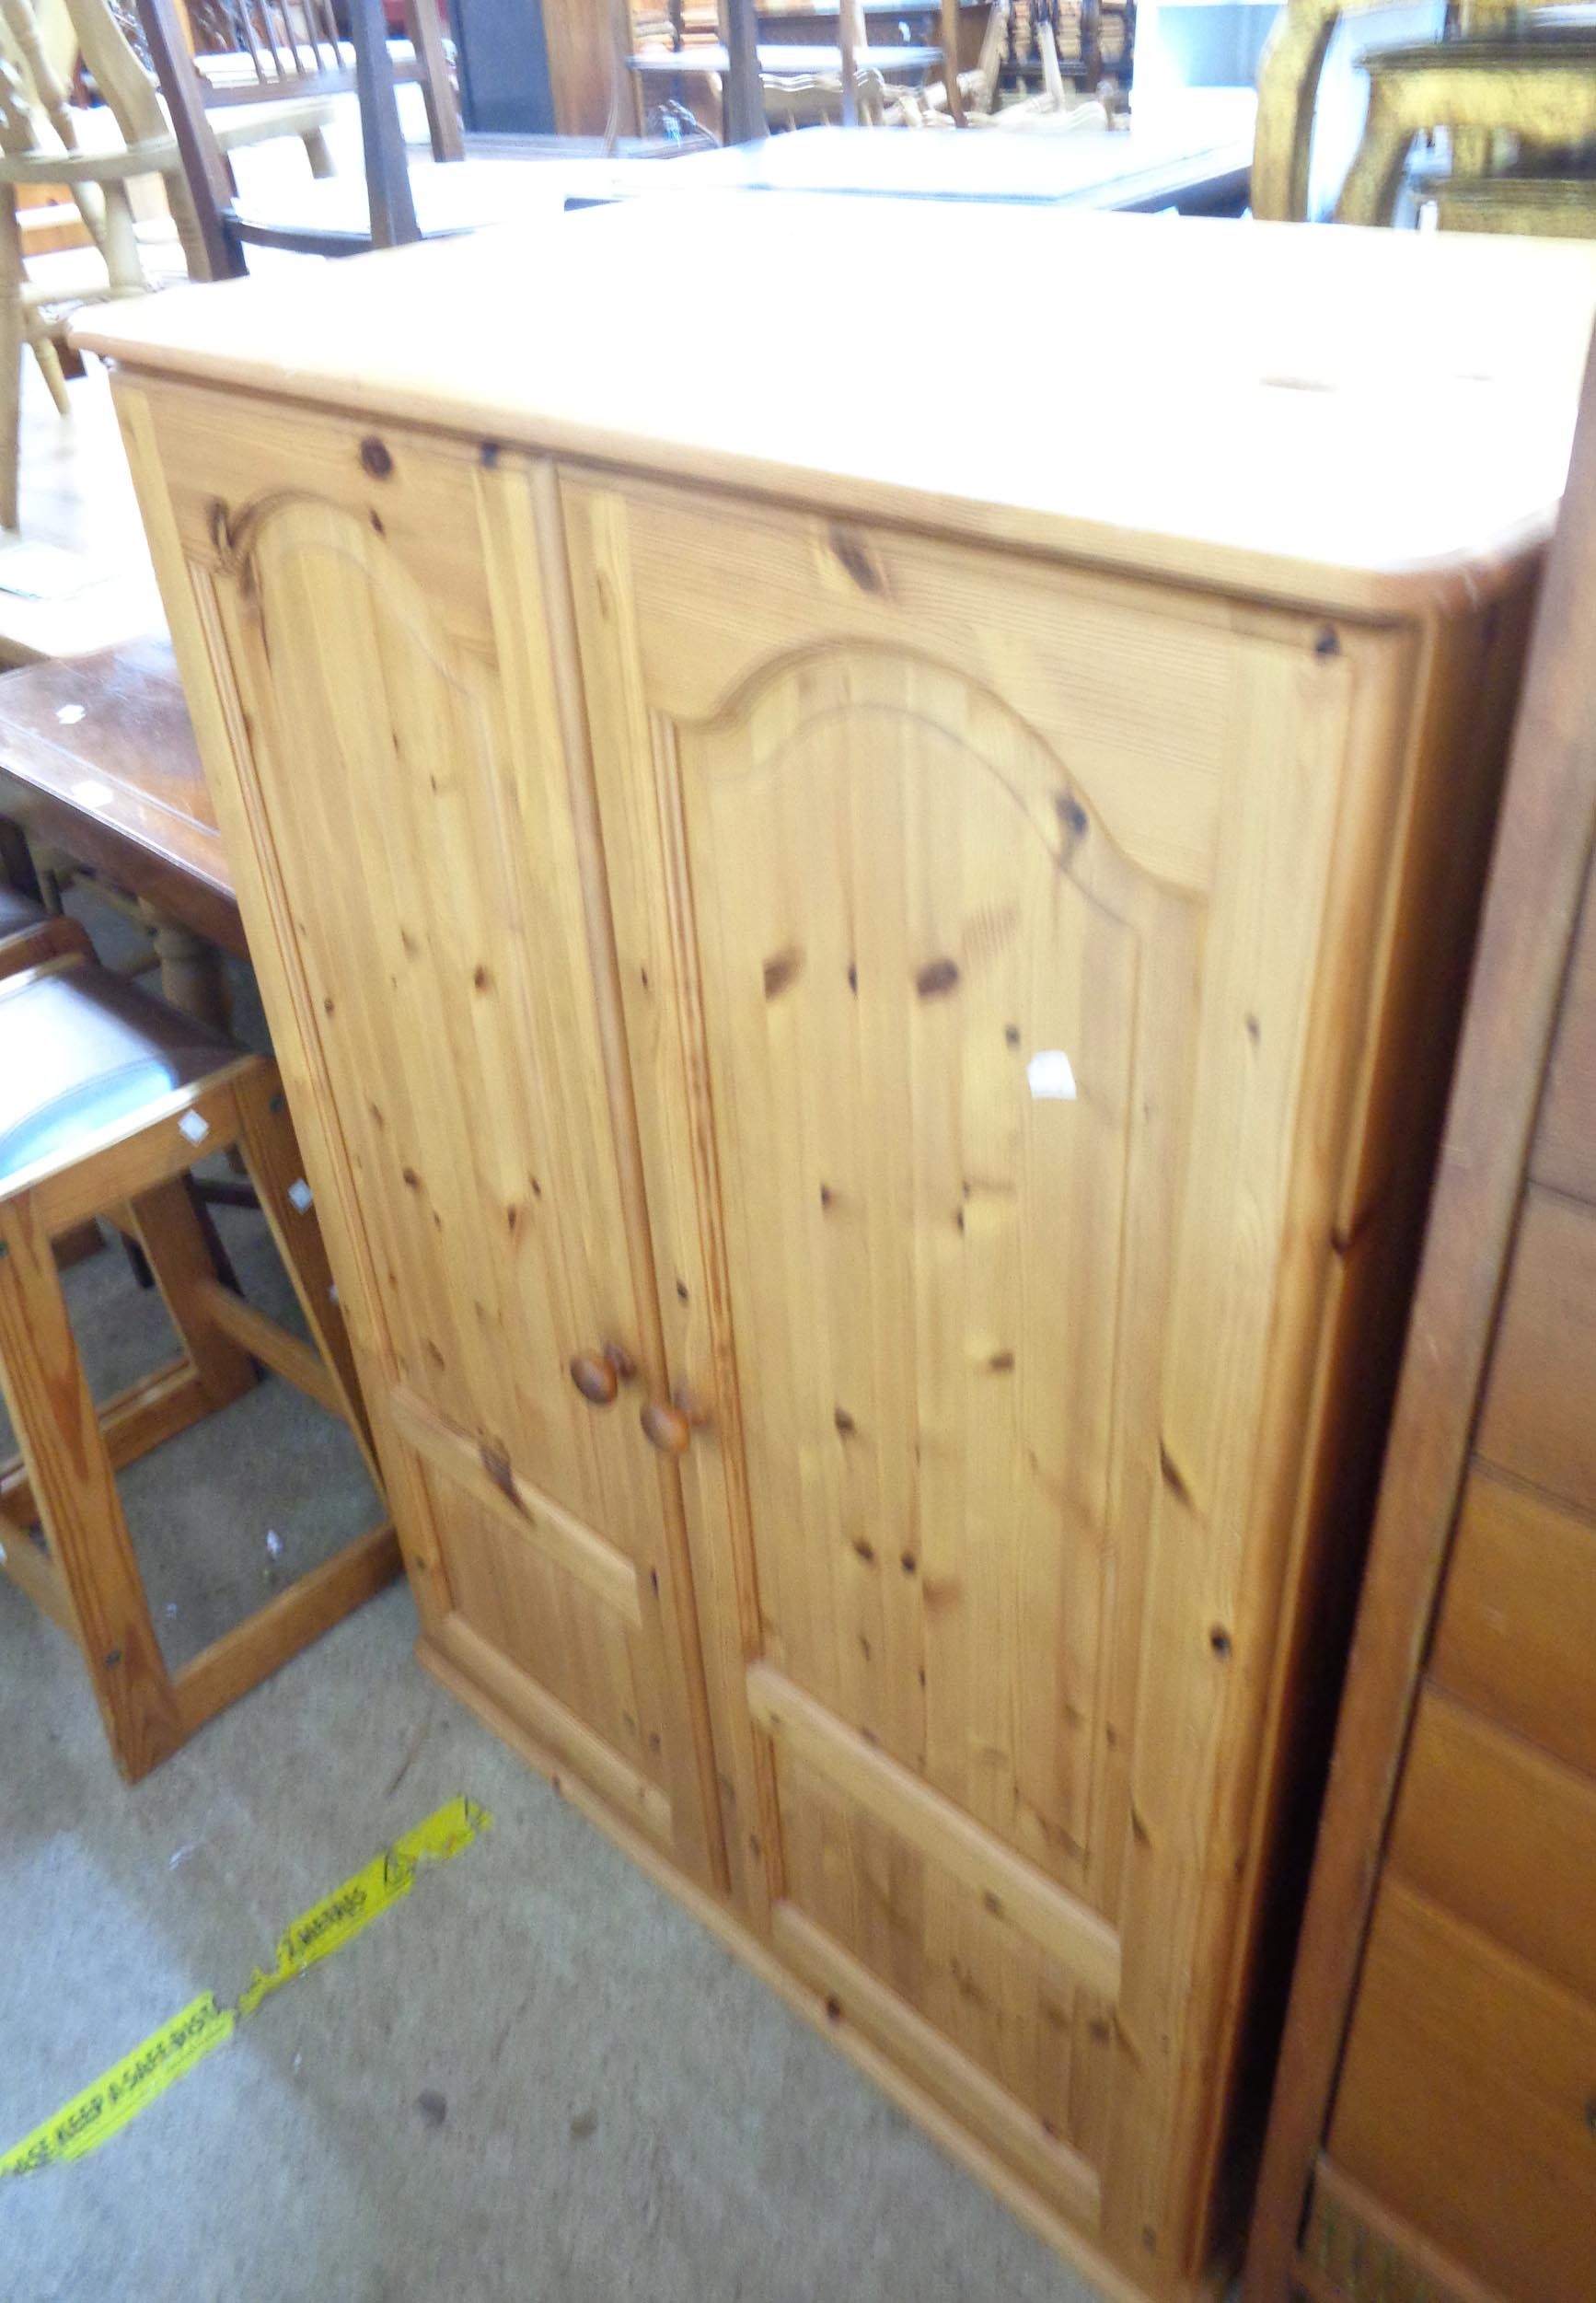 A 91cm modern polished pine wardrobe with hanging space enclosed by a pair of panelled doors